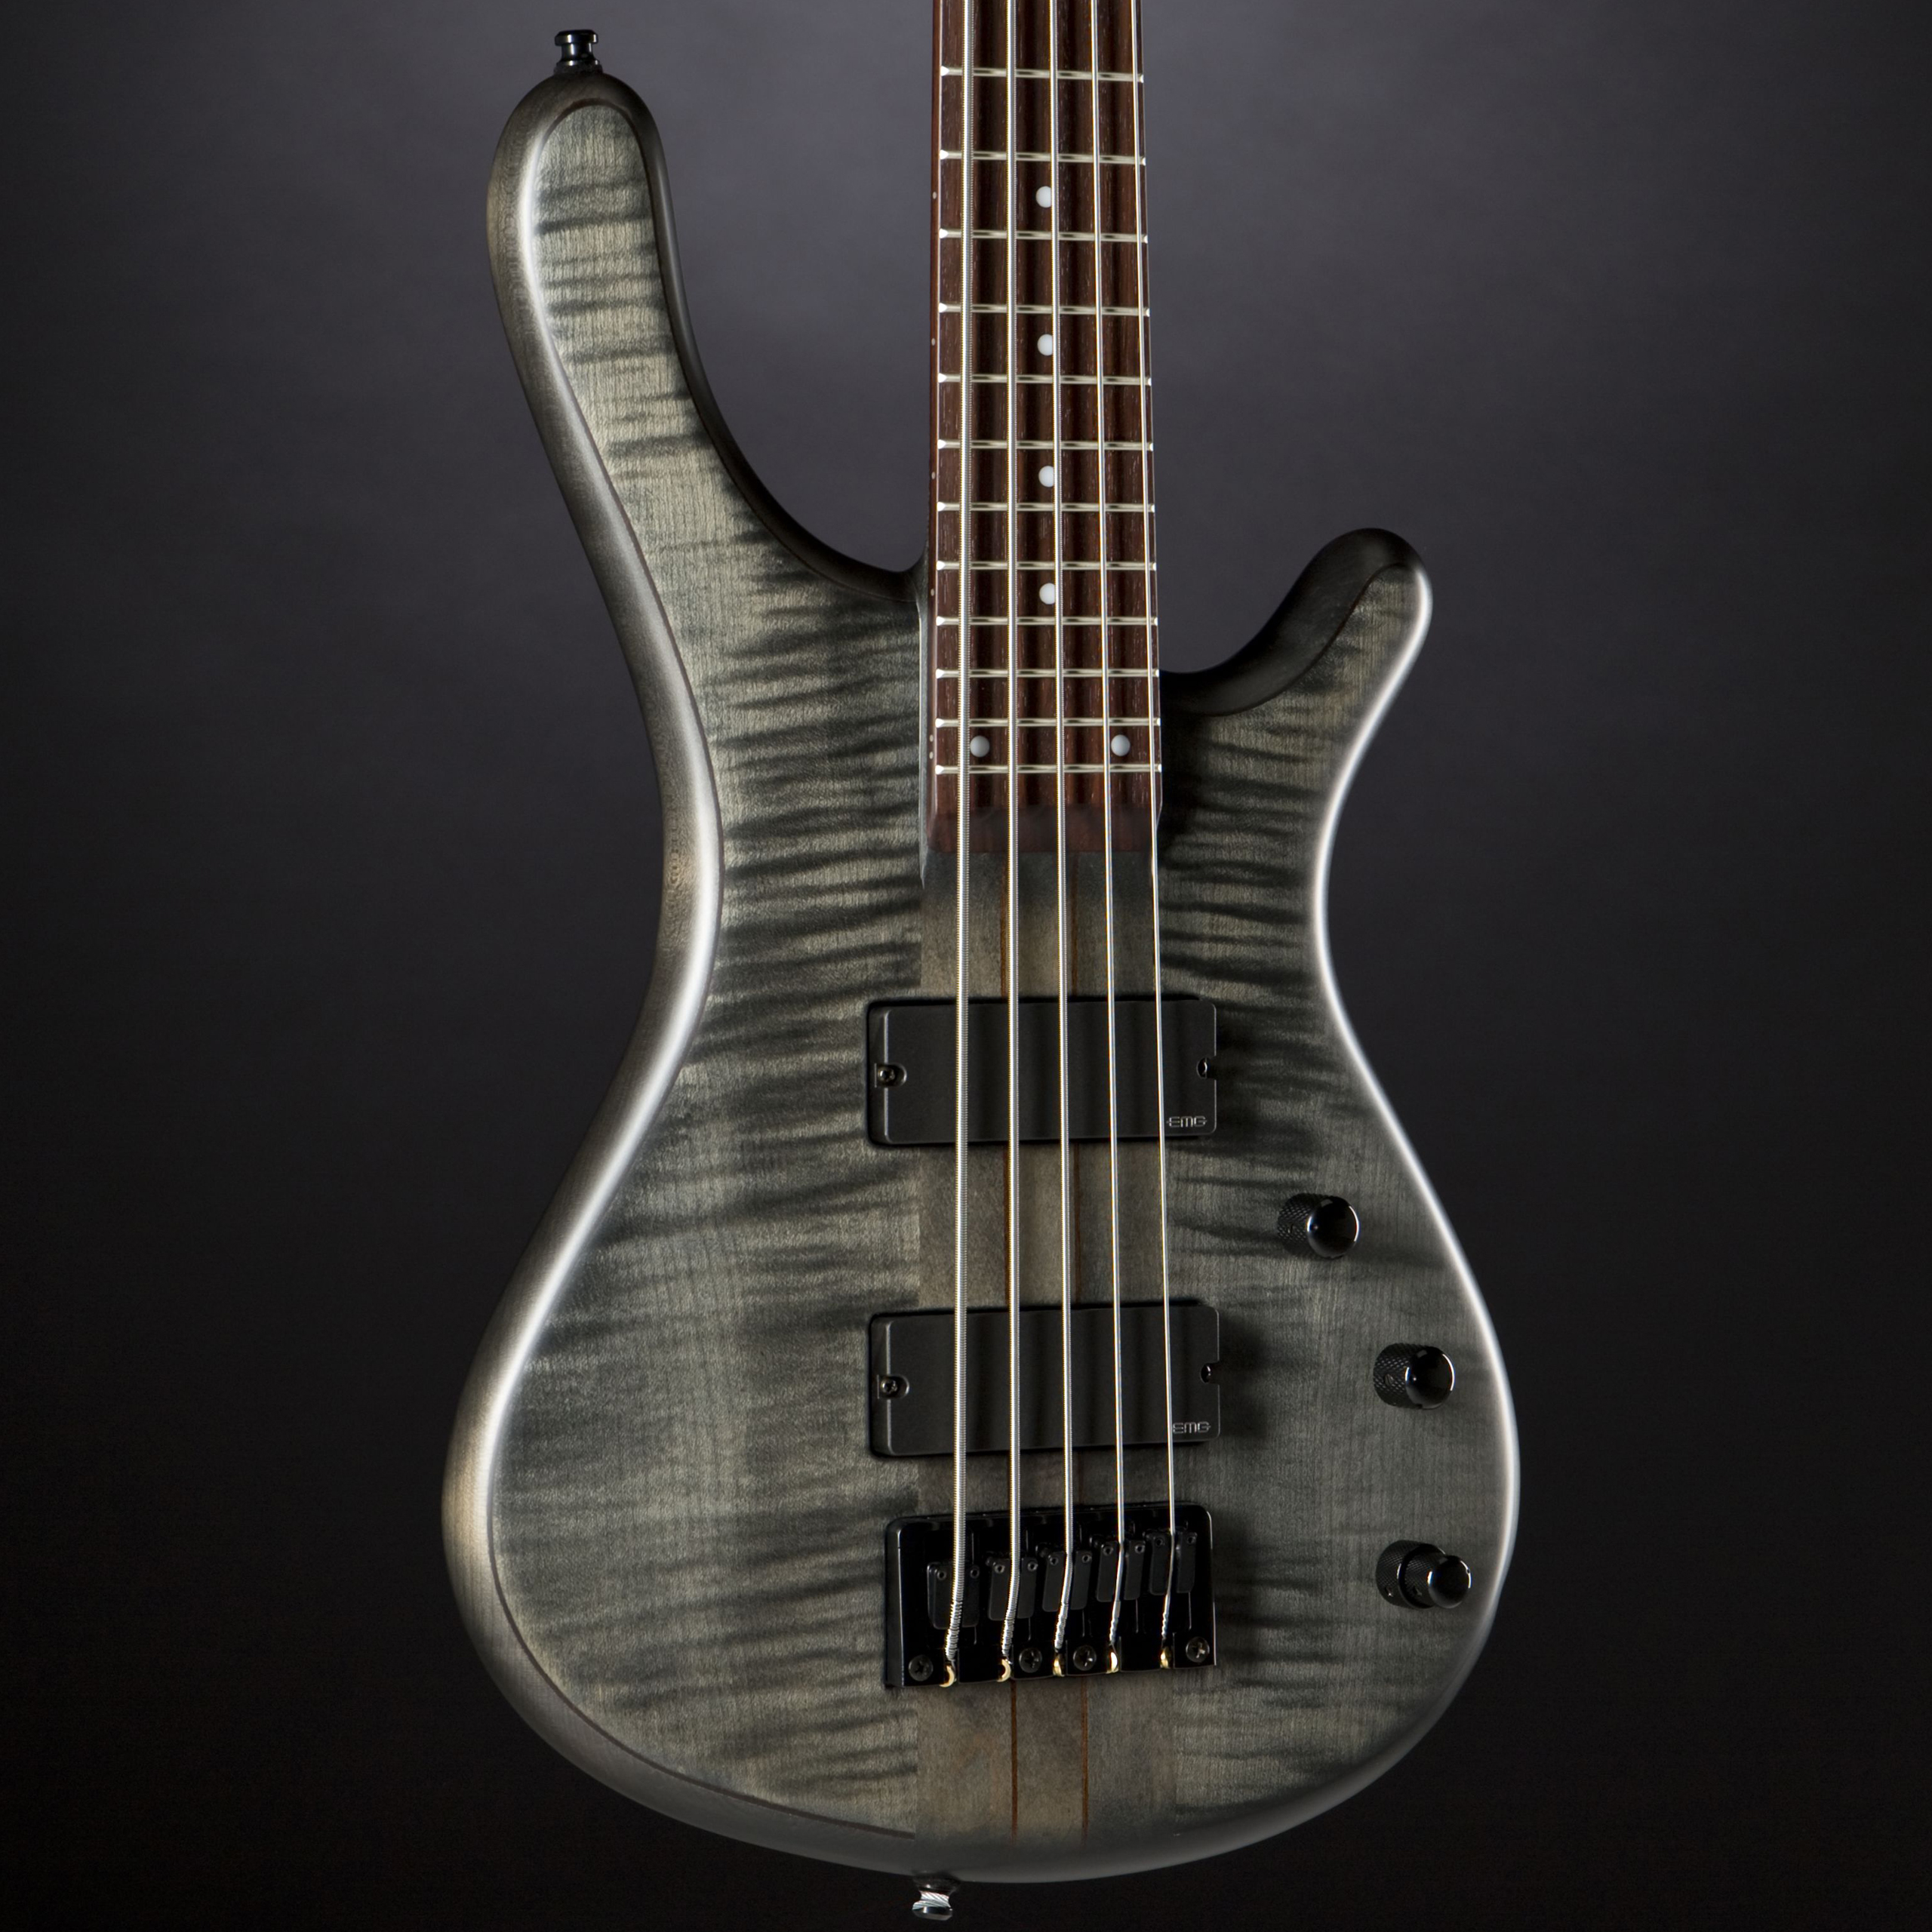 FAME Baphomet NTB 5 LE Graphite Satin Limited Edition Korpus